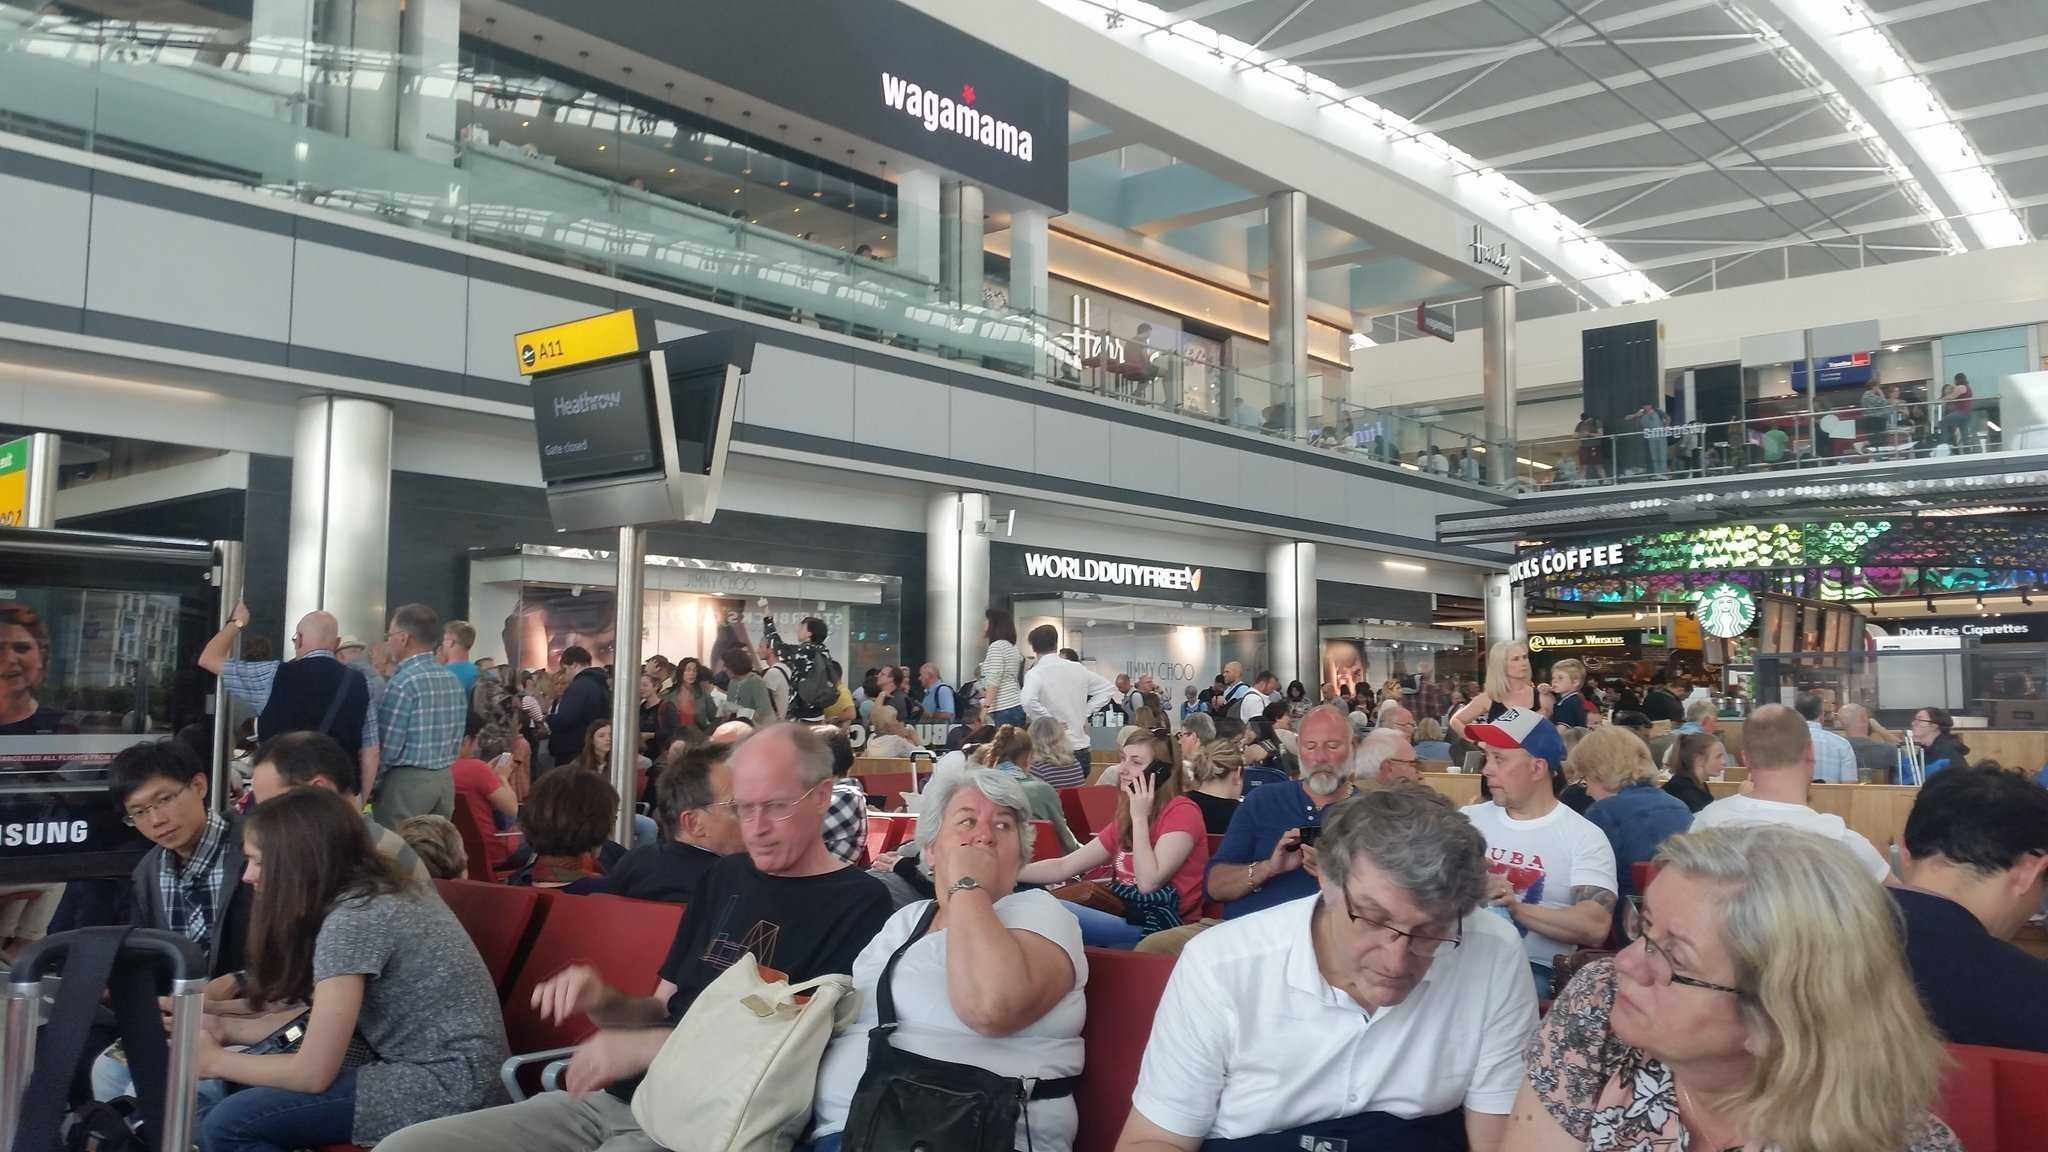 The waiting area at Heathrow airport as passengers are waiting for details about flights.